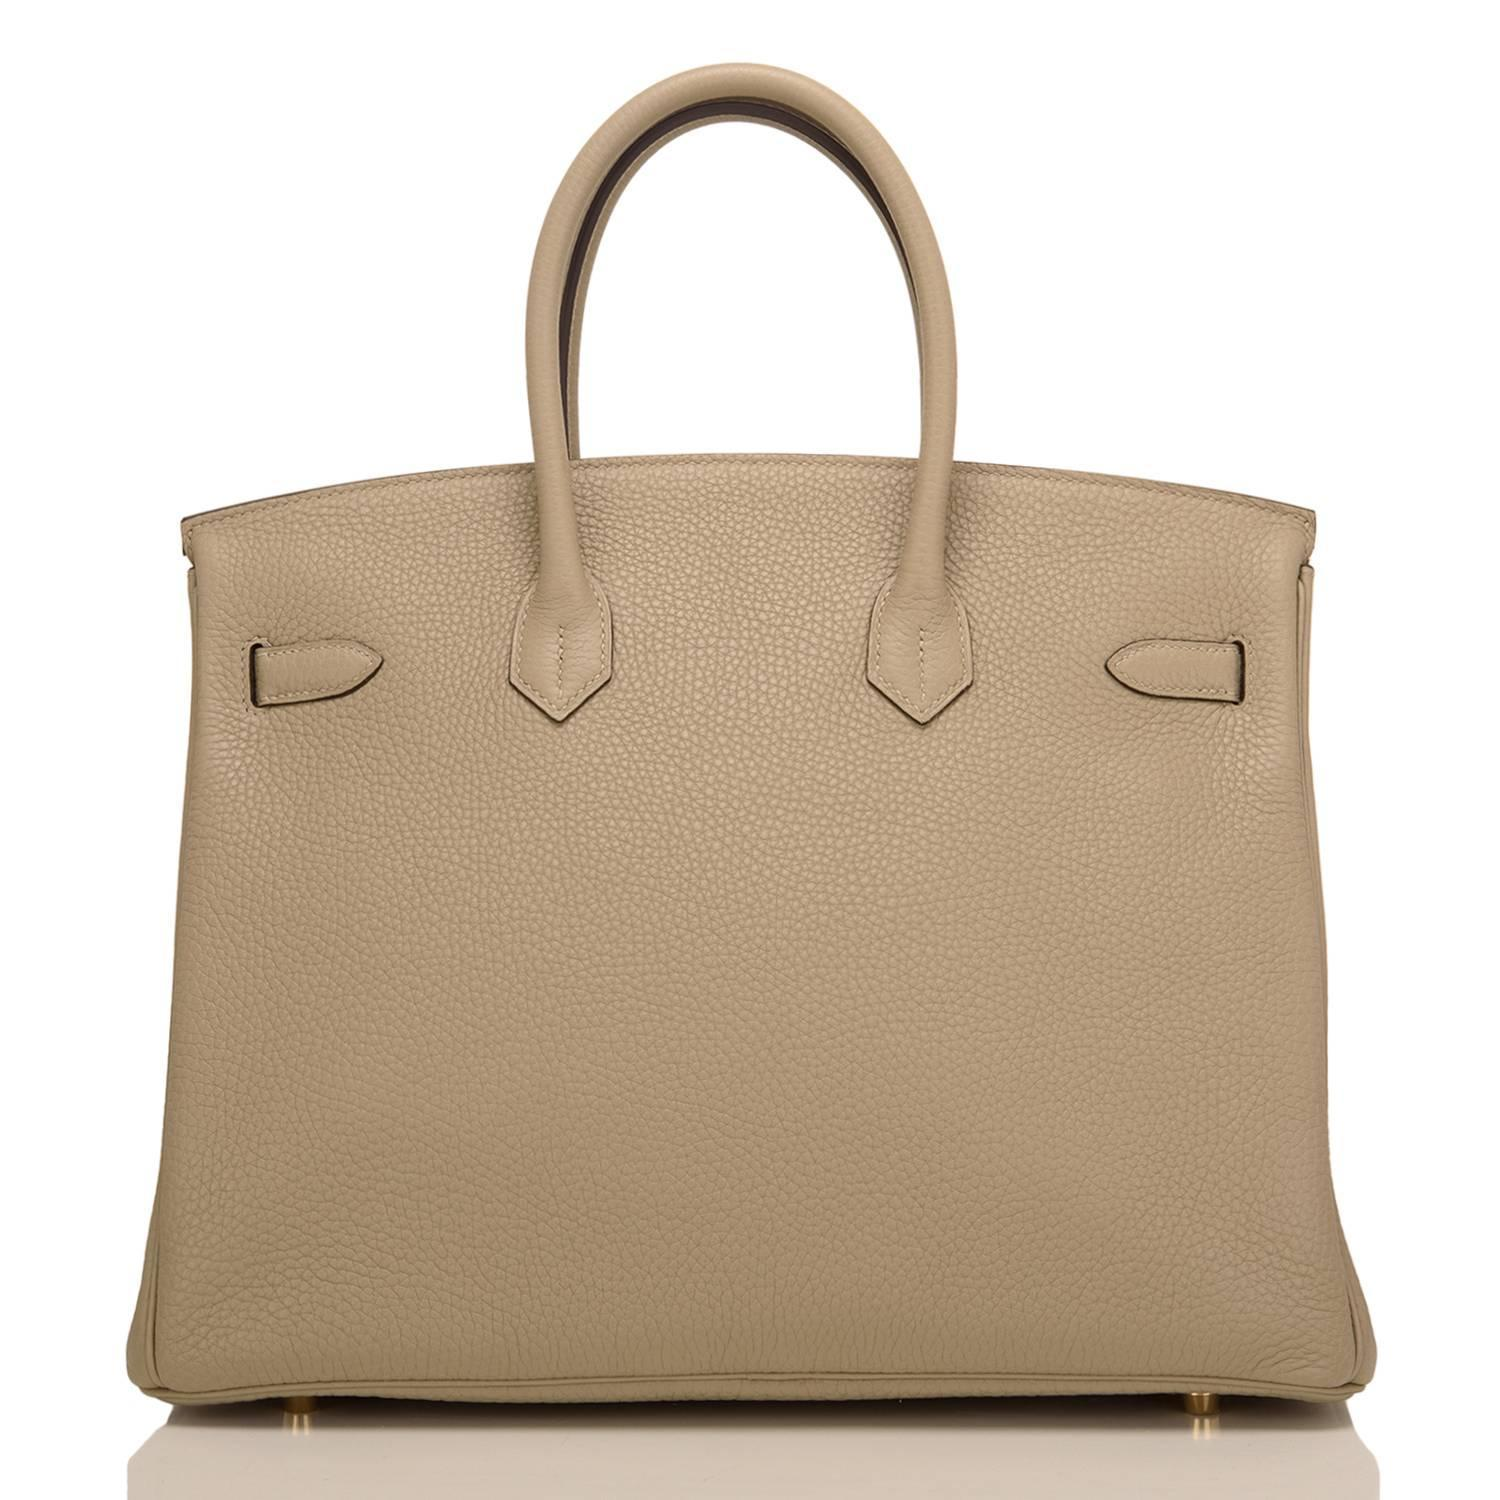 birkin handbags price - Vintage Herm��s Top Handle Bags - 782 For Sale at 1stdibs - Page 4